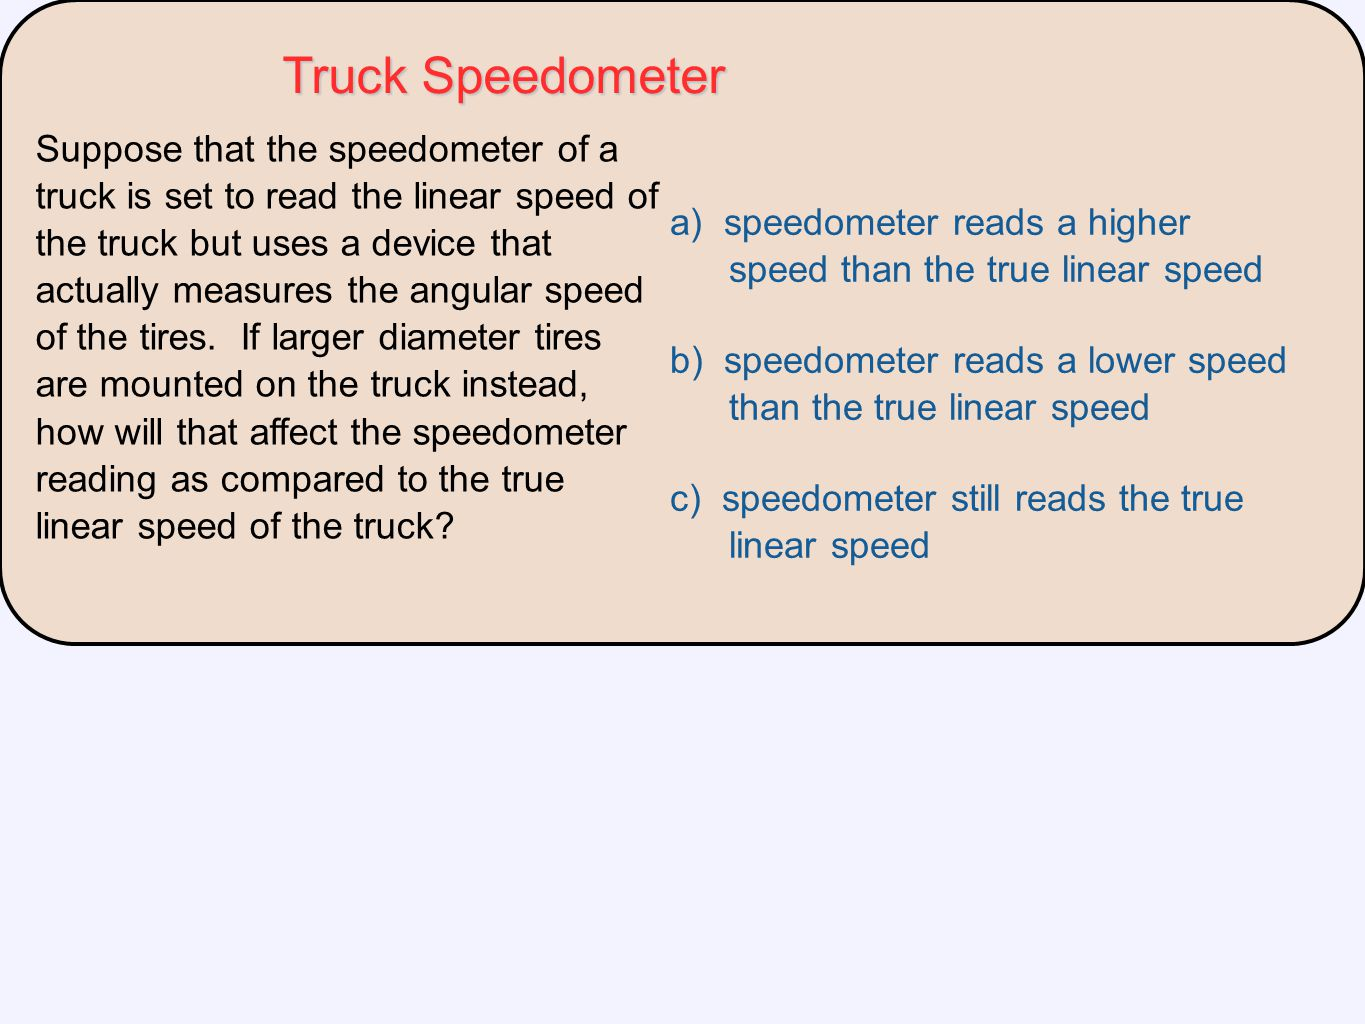 Suppose that the speedometer of a truck is set to read the linear speed of the truck but uses a device that actually measures the angular speed of the